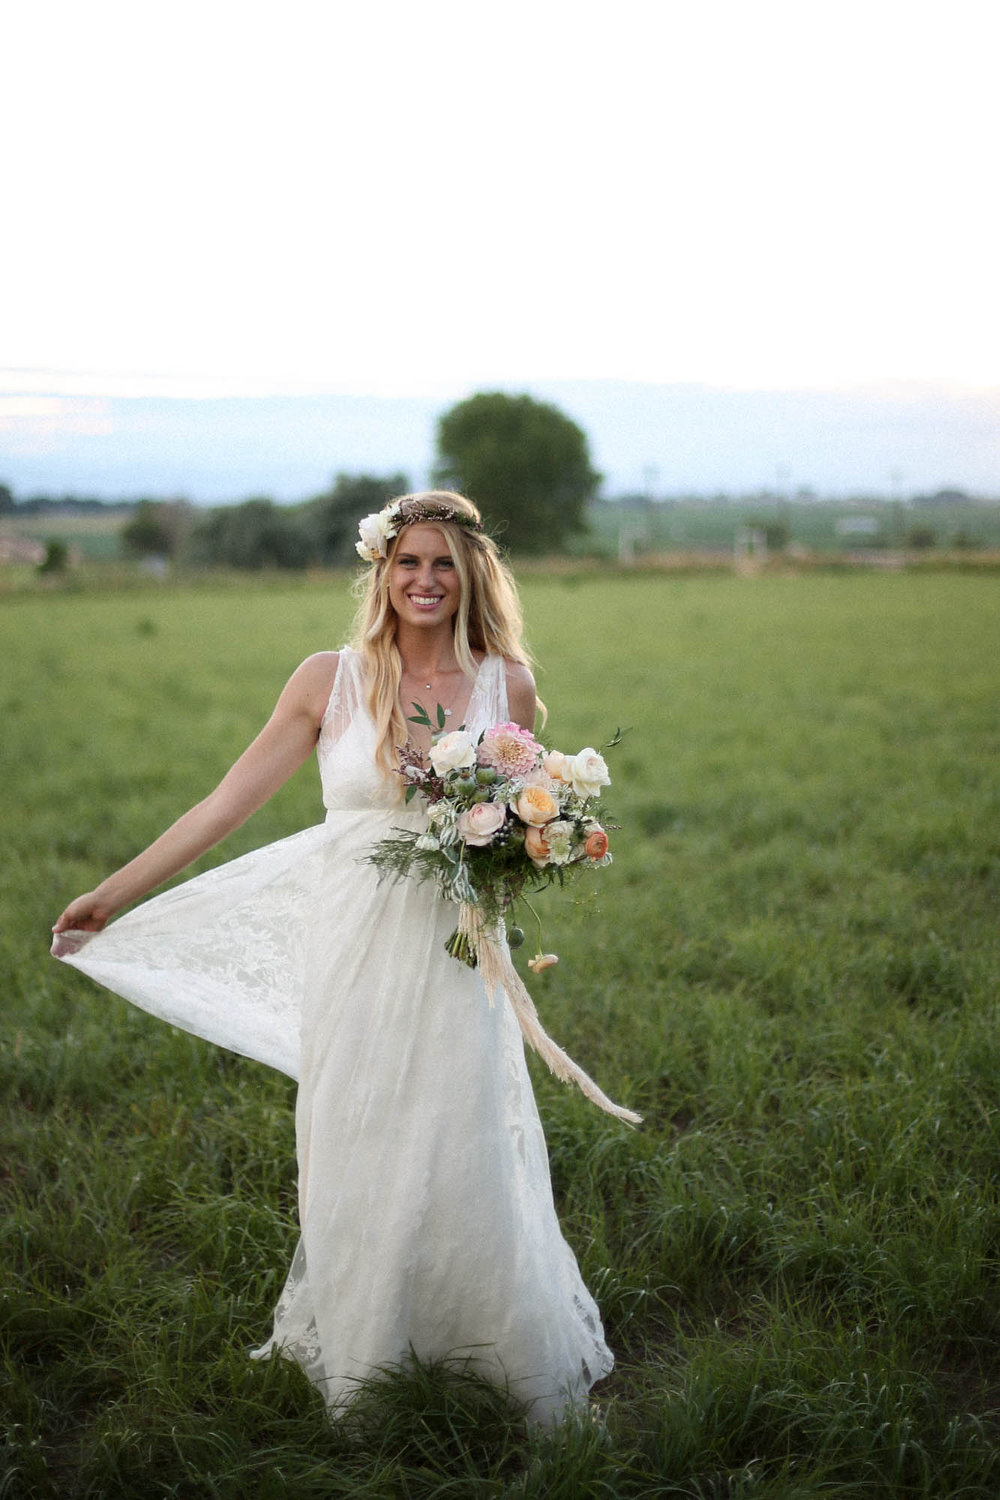 courtney joe u0027s bohemian backyard wedding u2014 little white dress